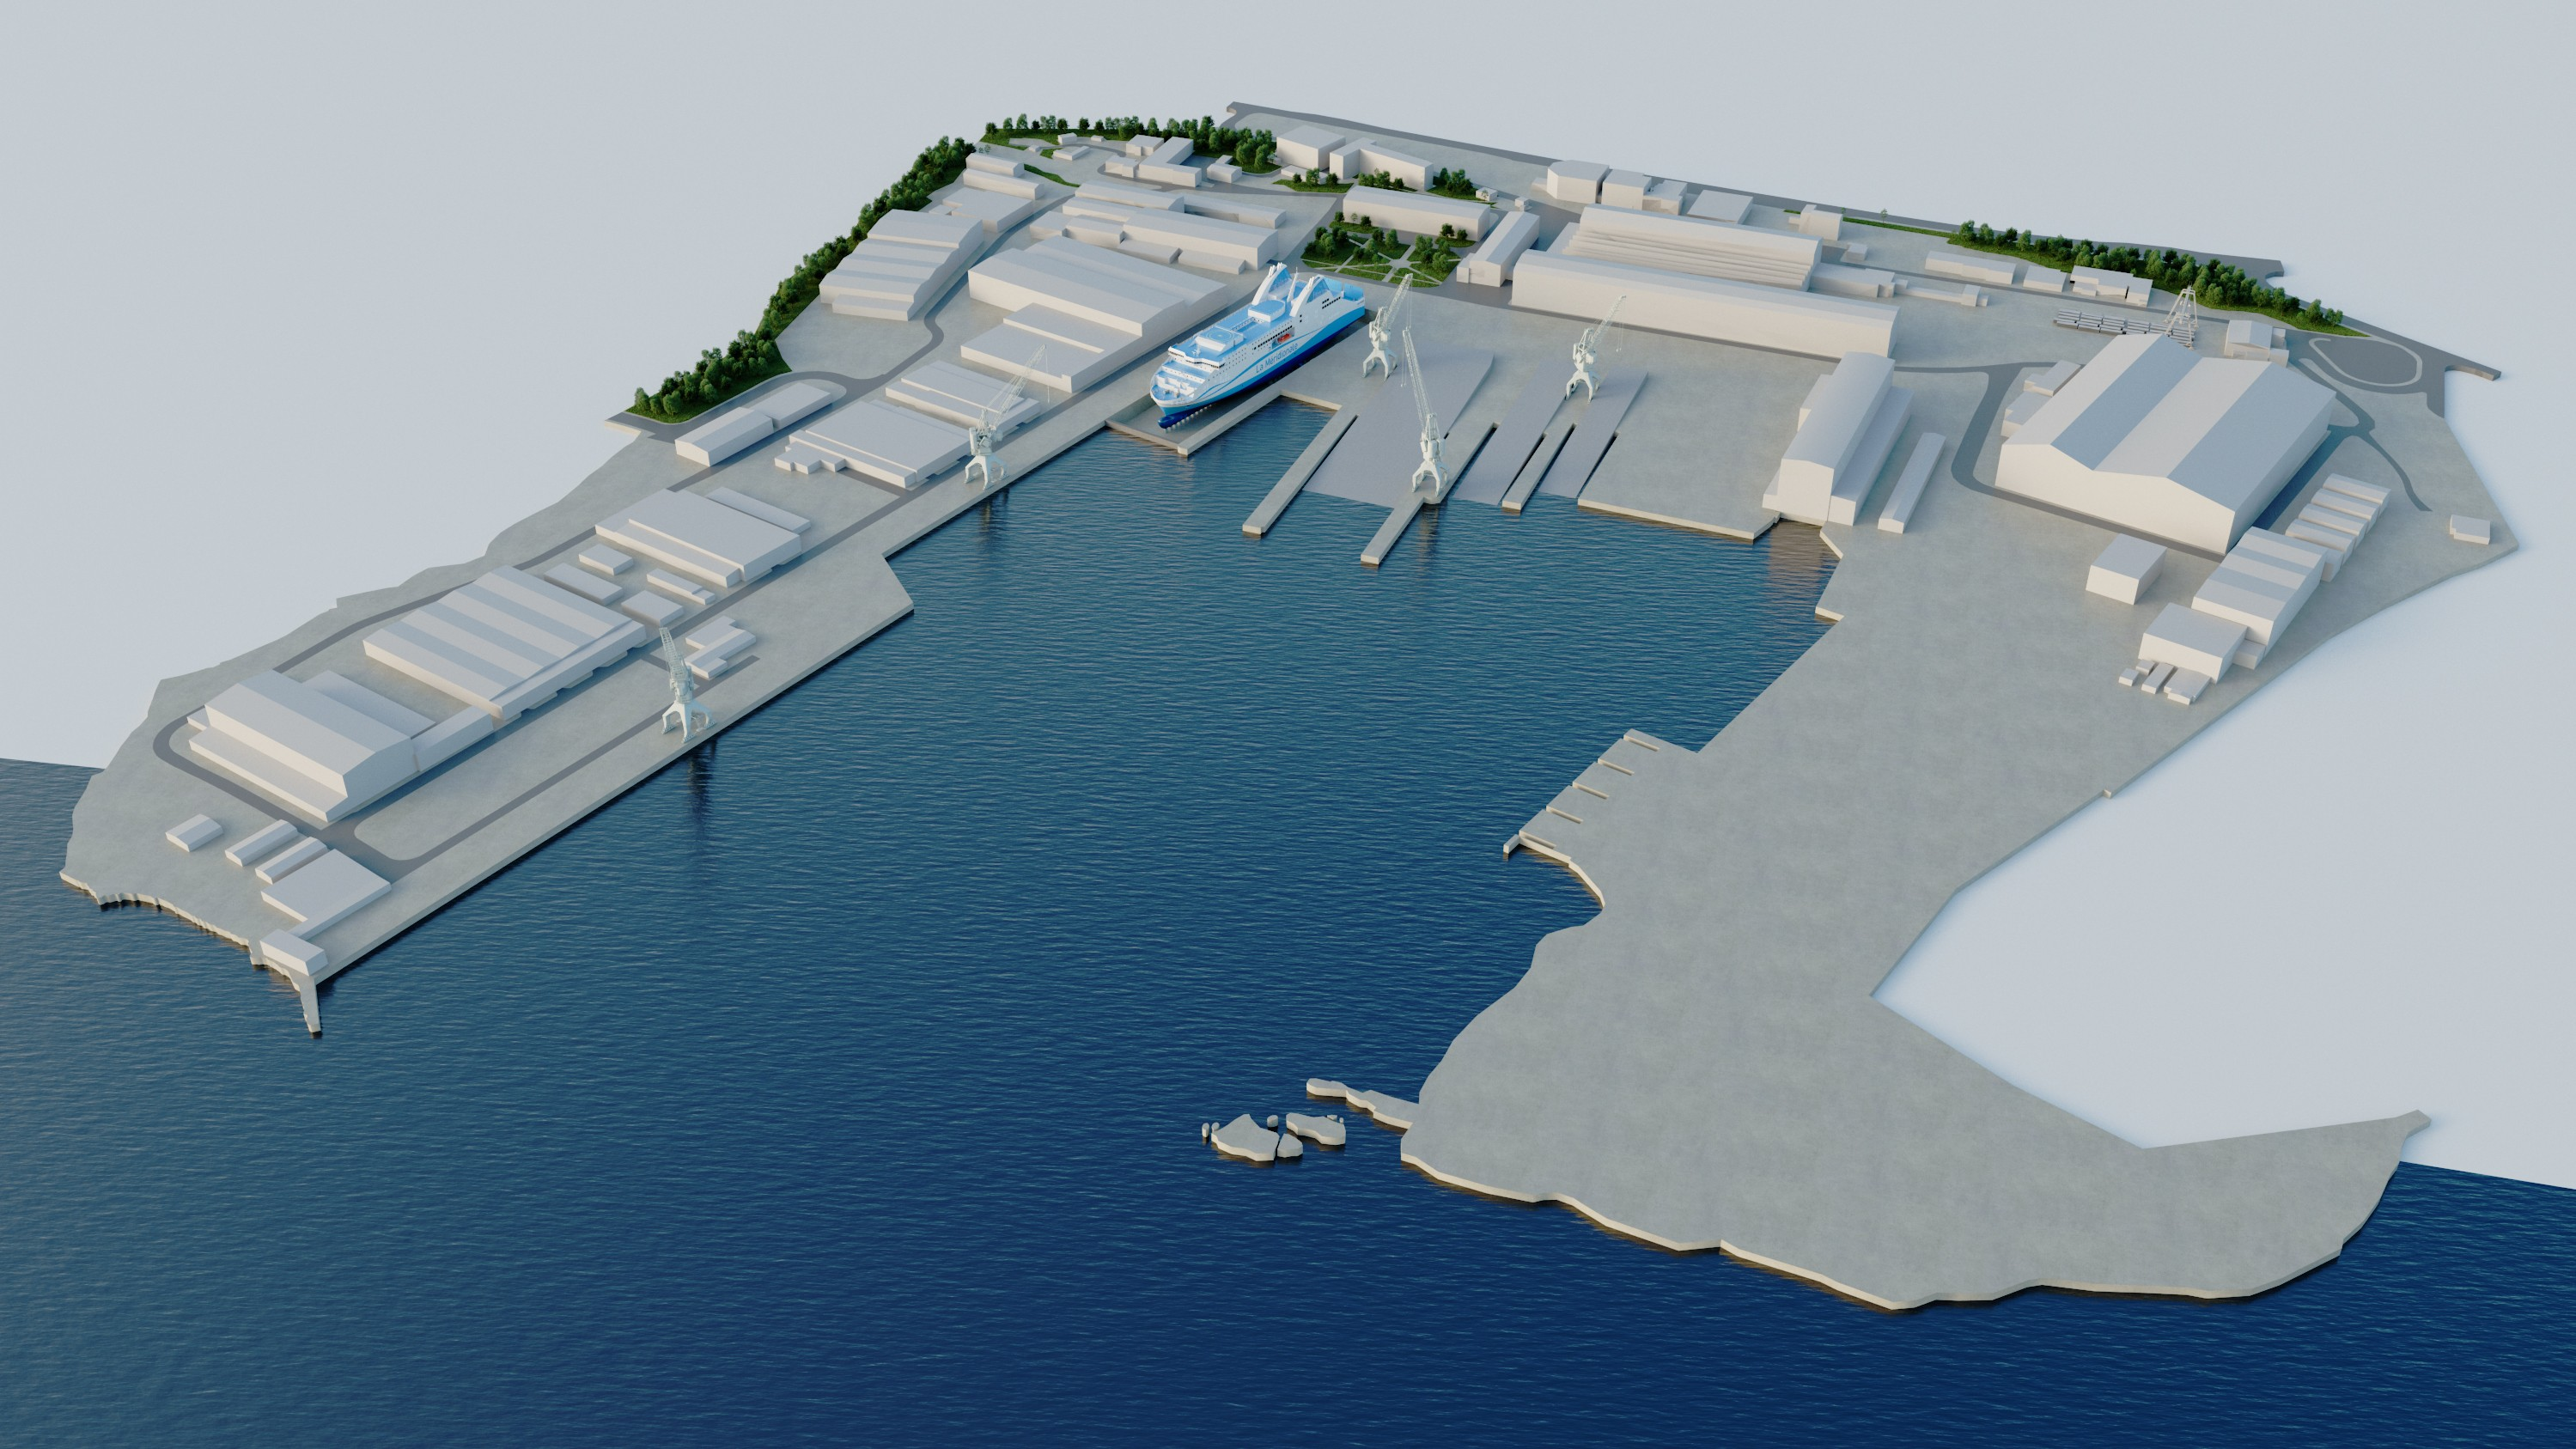 EXPLORATION WORKS FOR A DRY DOCK IN BRODOSPLIT